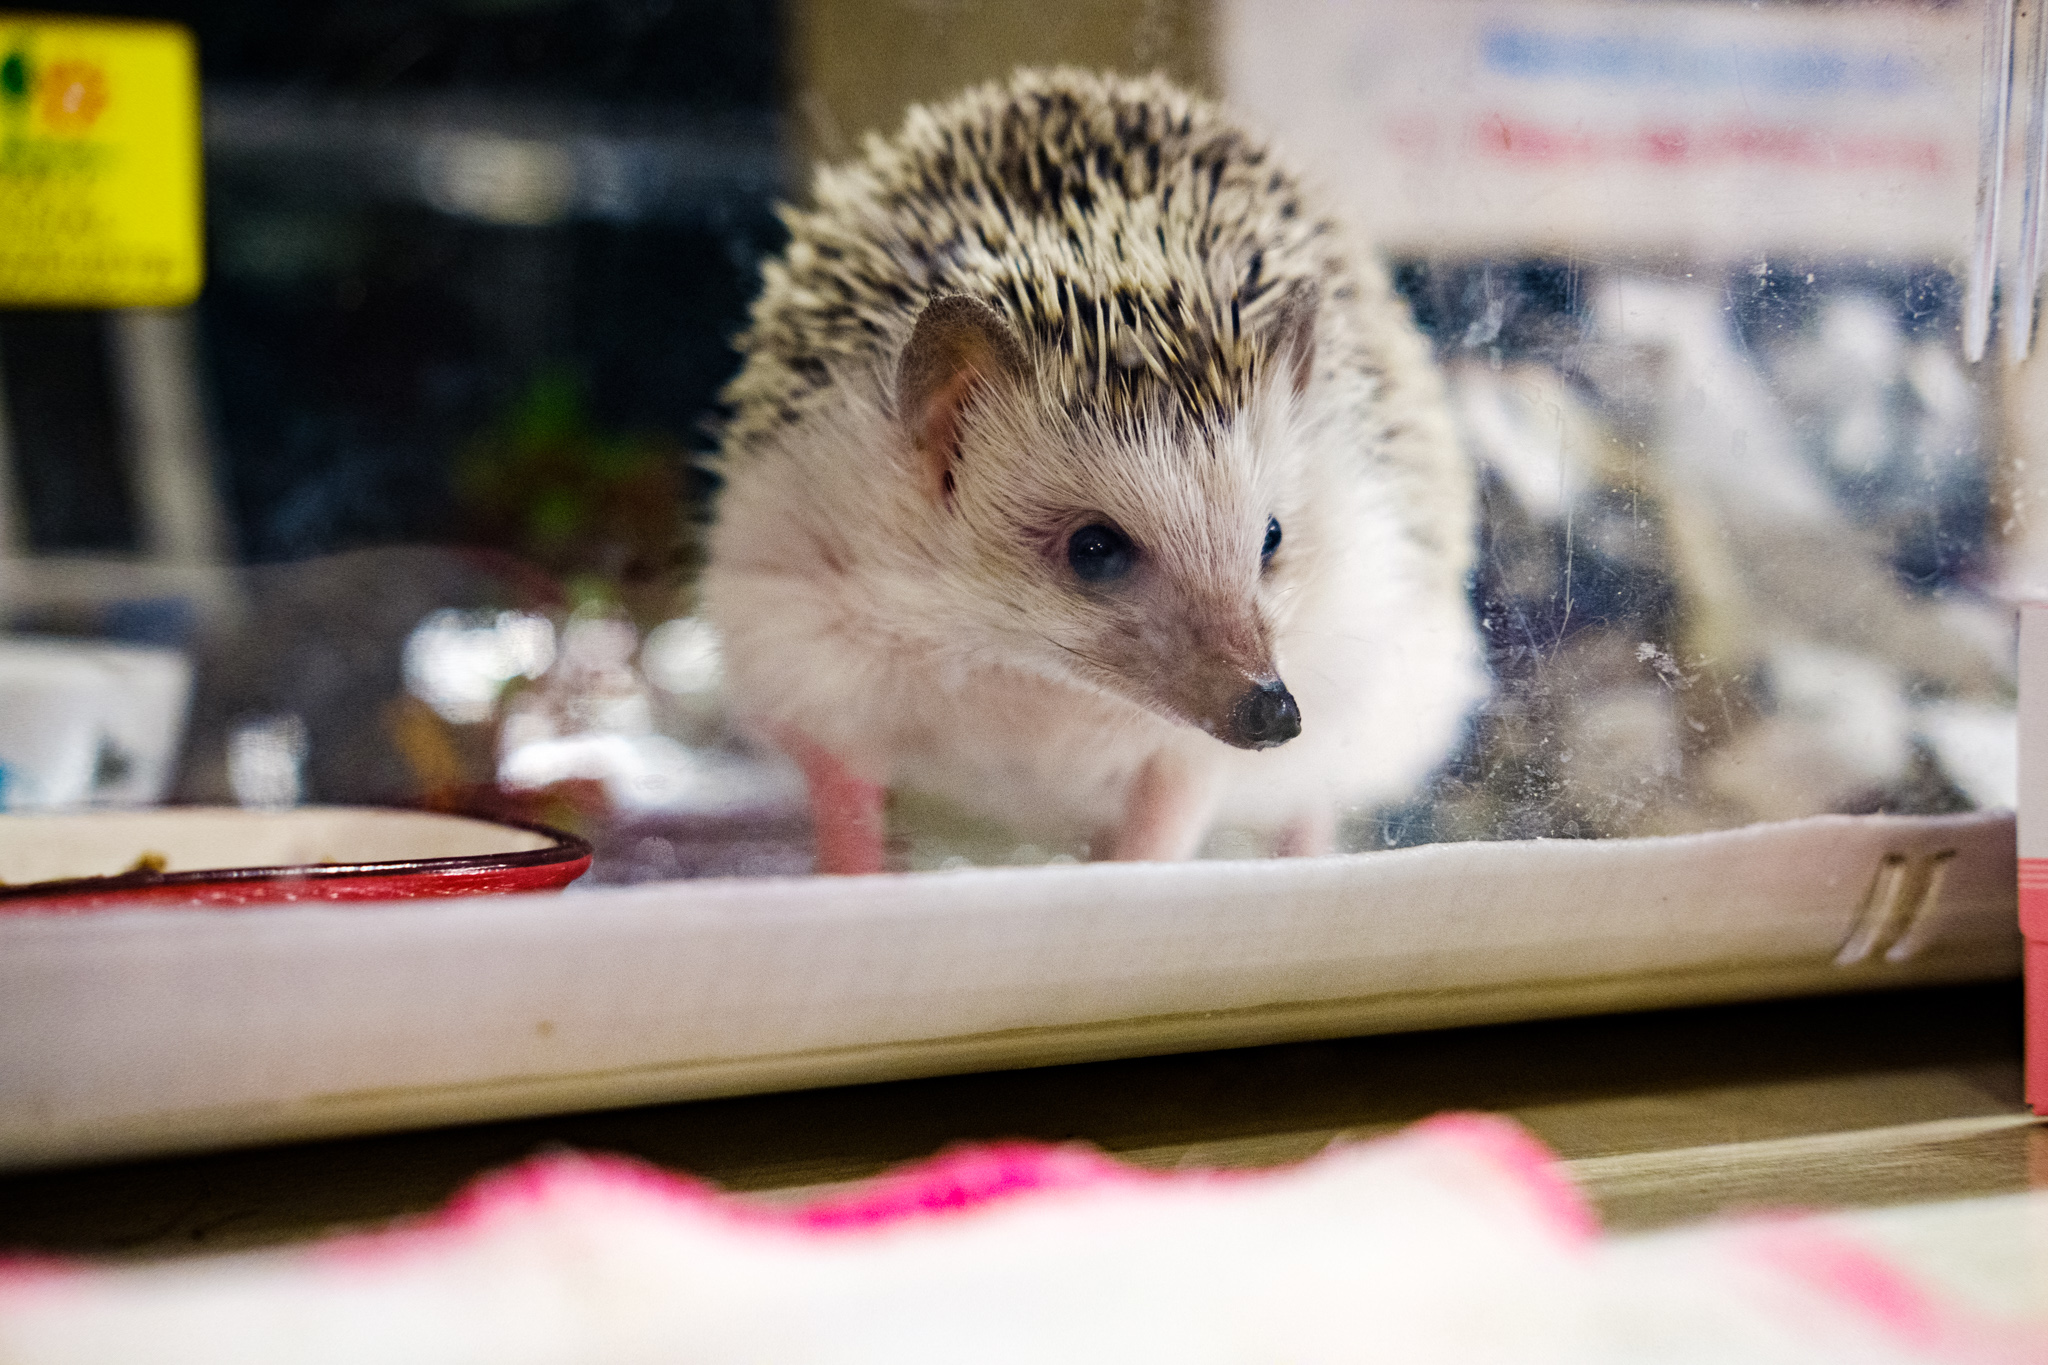 There was even a cute hedgehog!